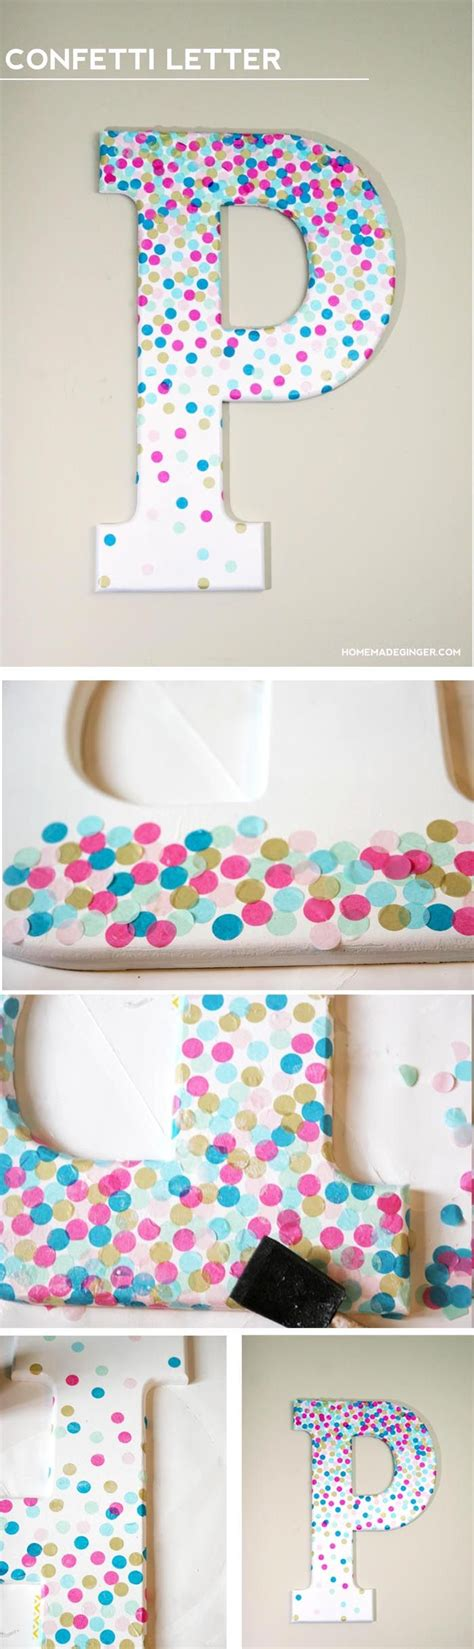 ideas  painted letters  pinterest